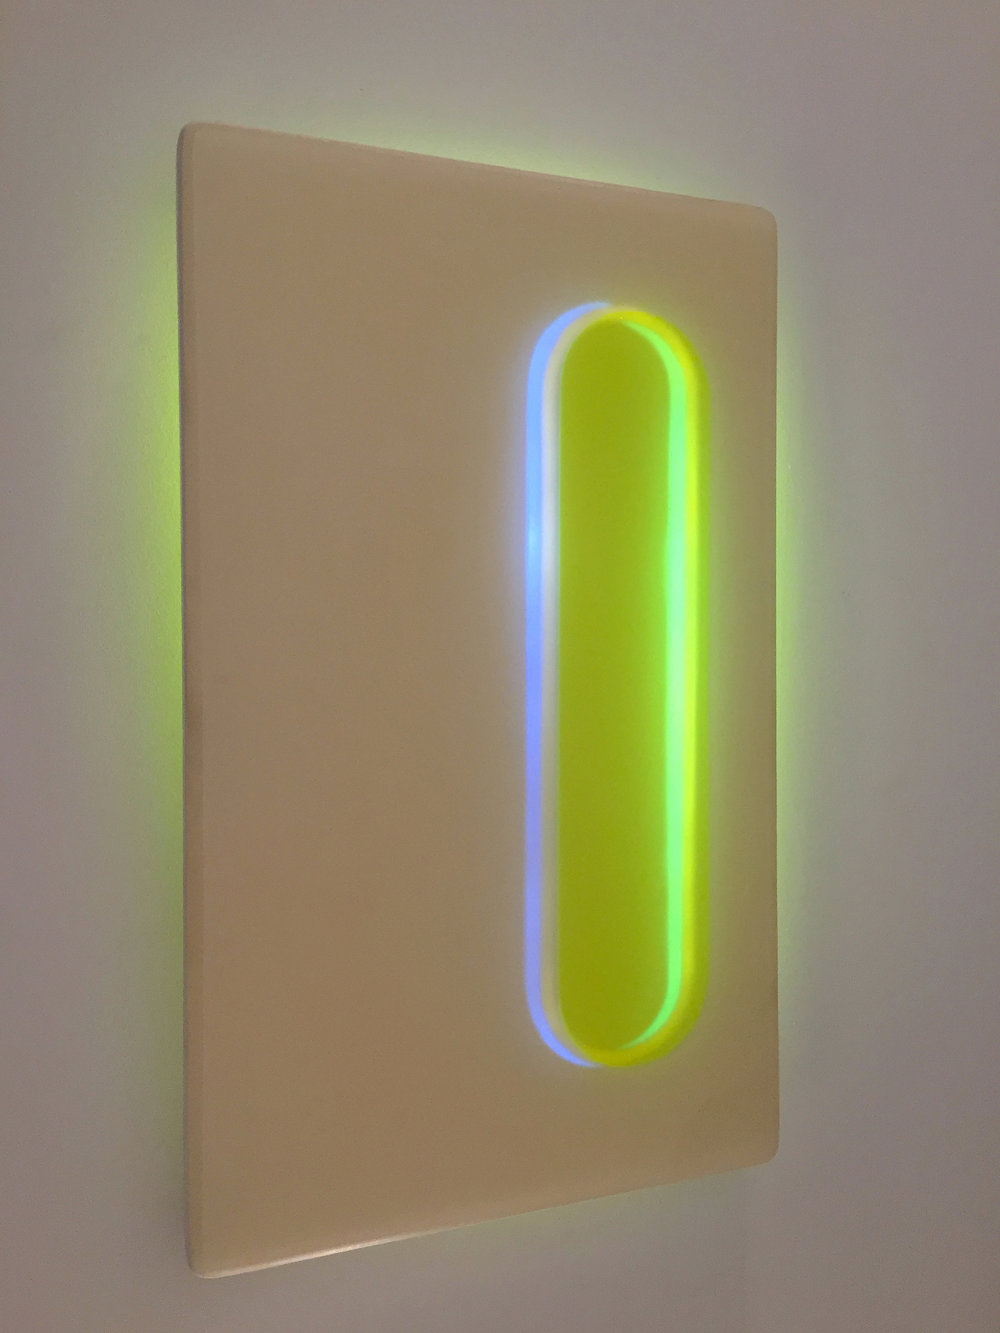 Light sculpture shown in daylight made of resin, acrylic, wood, and LED, with blue and green colors entitled Beacon 2 Night.